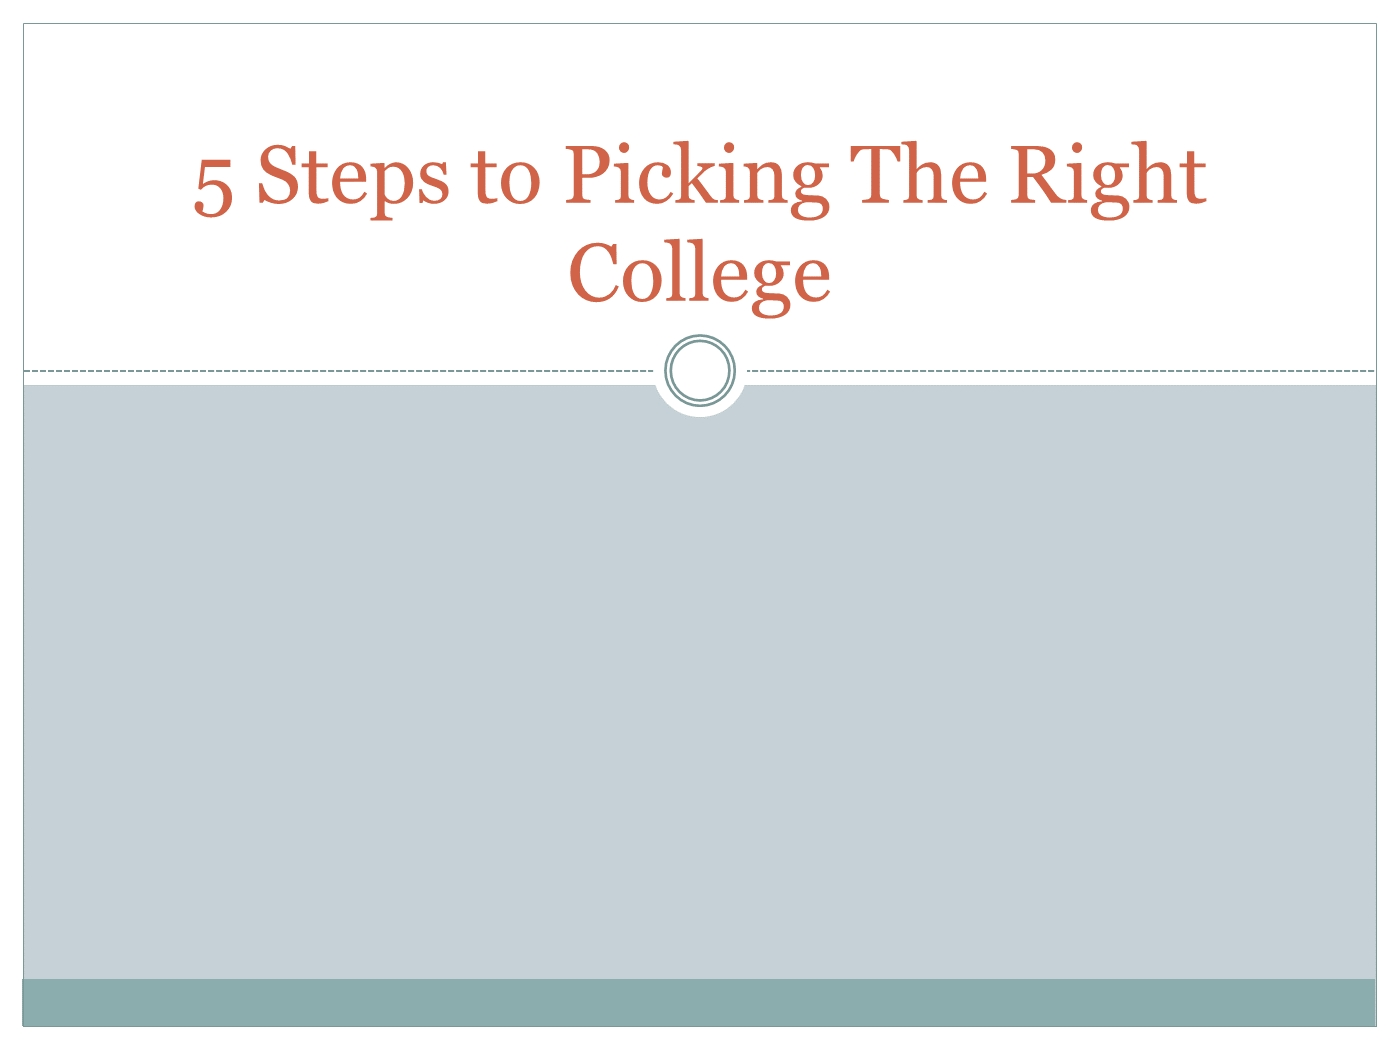 steps to picking the right college powerpoint presentation ppt